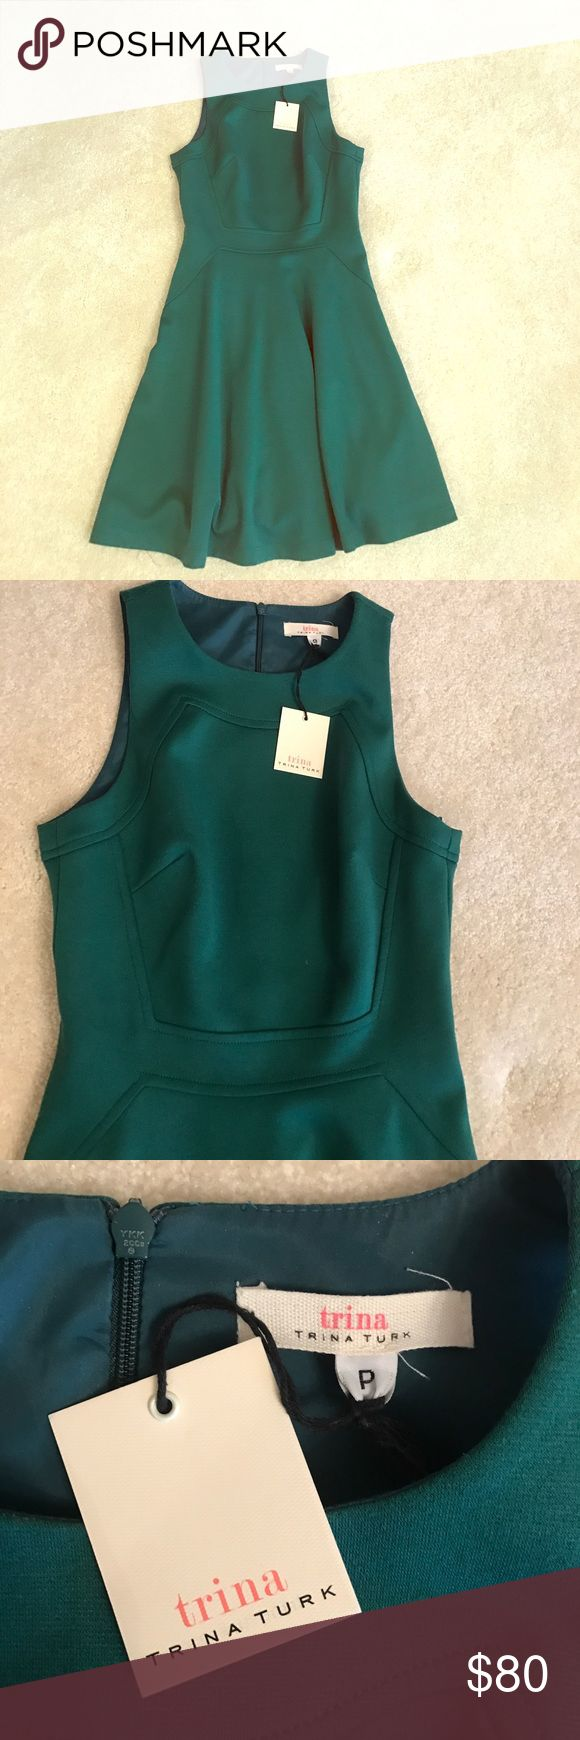 """Trina Turk Dress Gorgeous hunter green dress. Purchased at Nordstrom. New with tags. The tag just says """"P"""", which I just noticed for the first time, but is a 0. Trina Turk Dresses"""